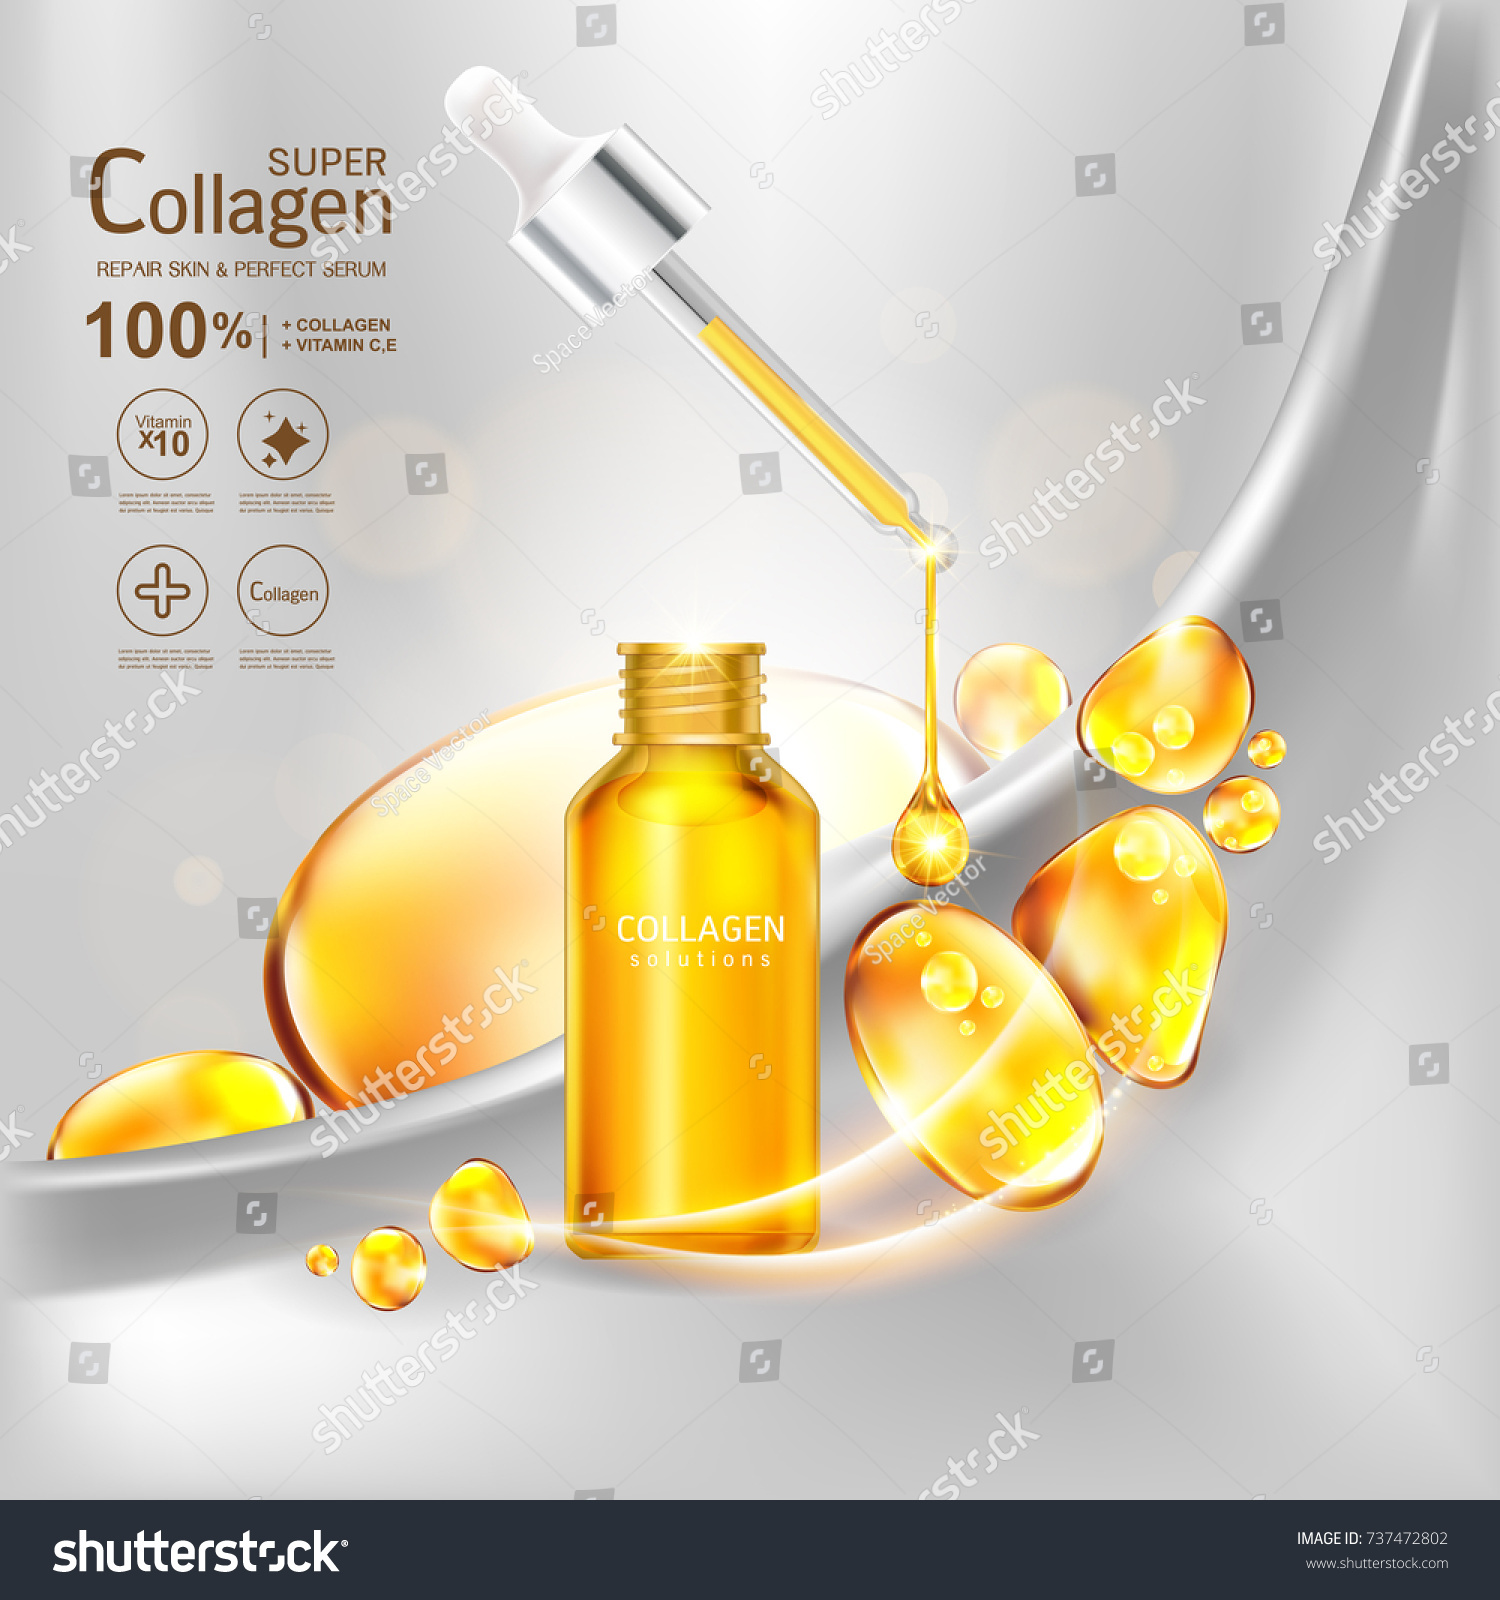 Super Collagen Serum Vitamin Vector Background Stock Royalty Or Skin Care Cosmetic Concept